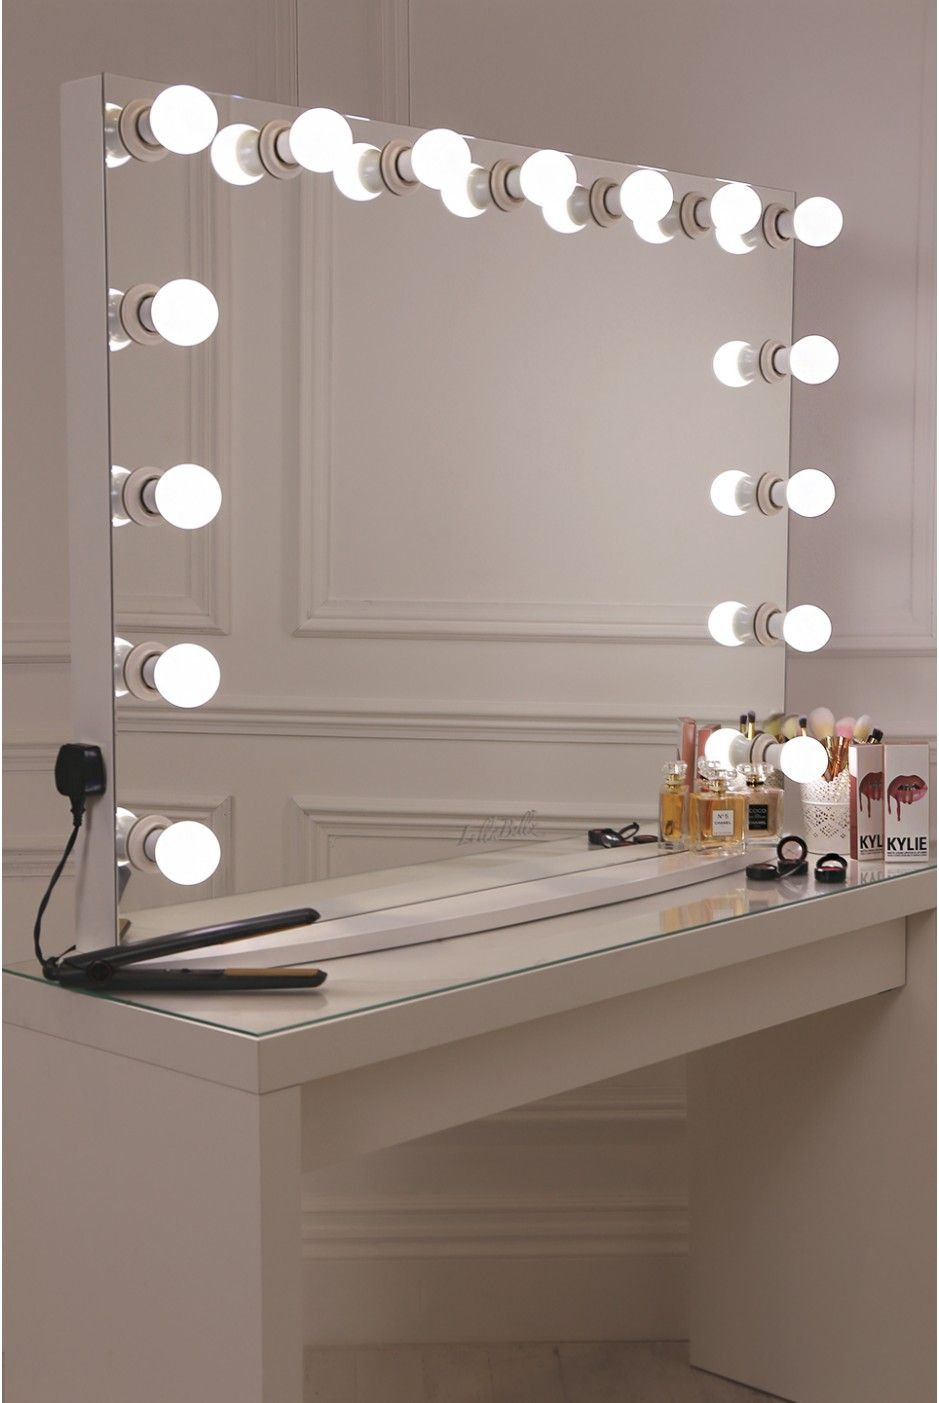 17 diy vanity mirror ideas to make your room more 20291 | a0e276707091adcf81380a7c330a258e